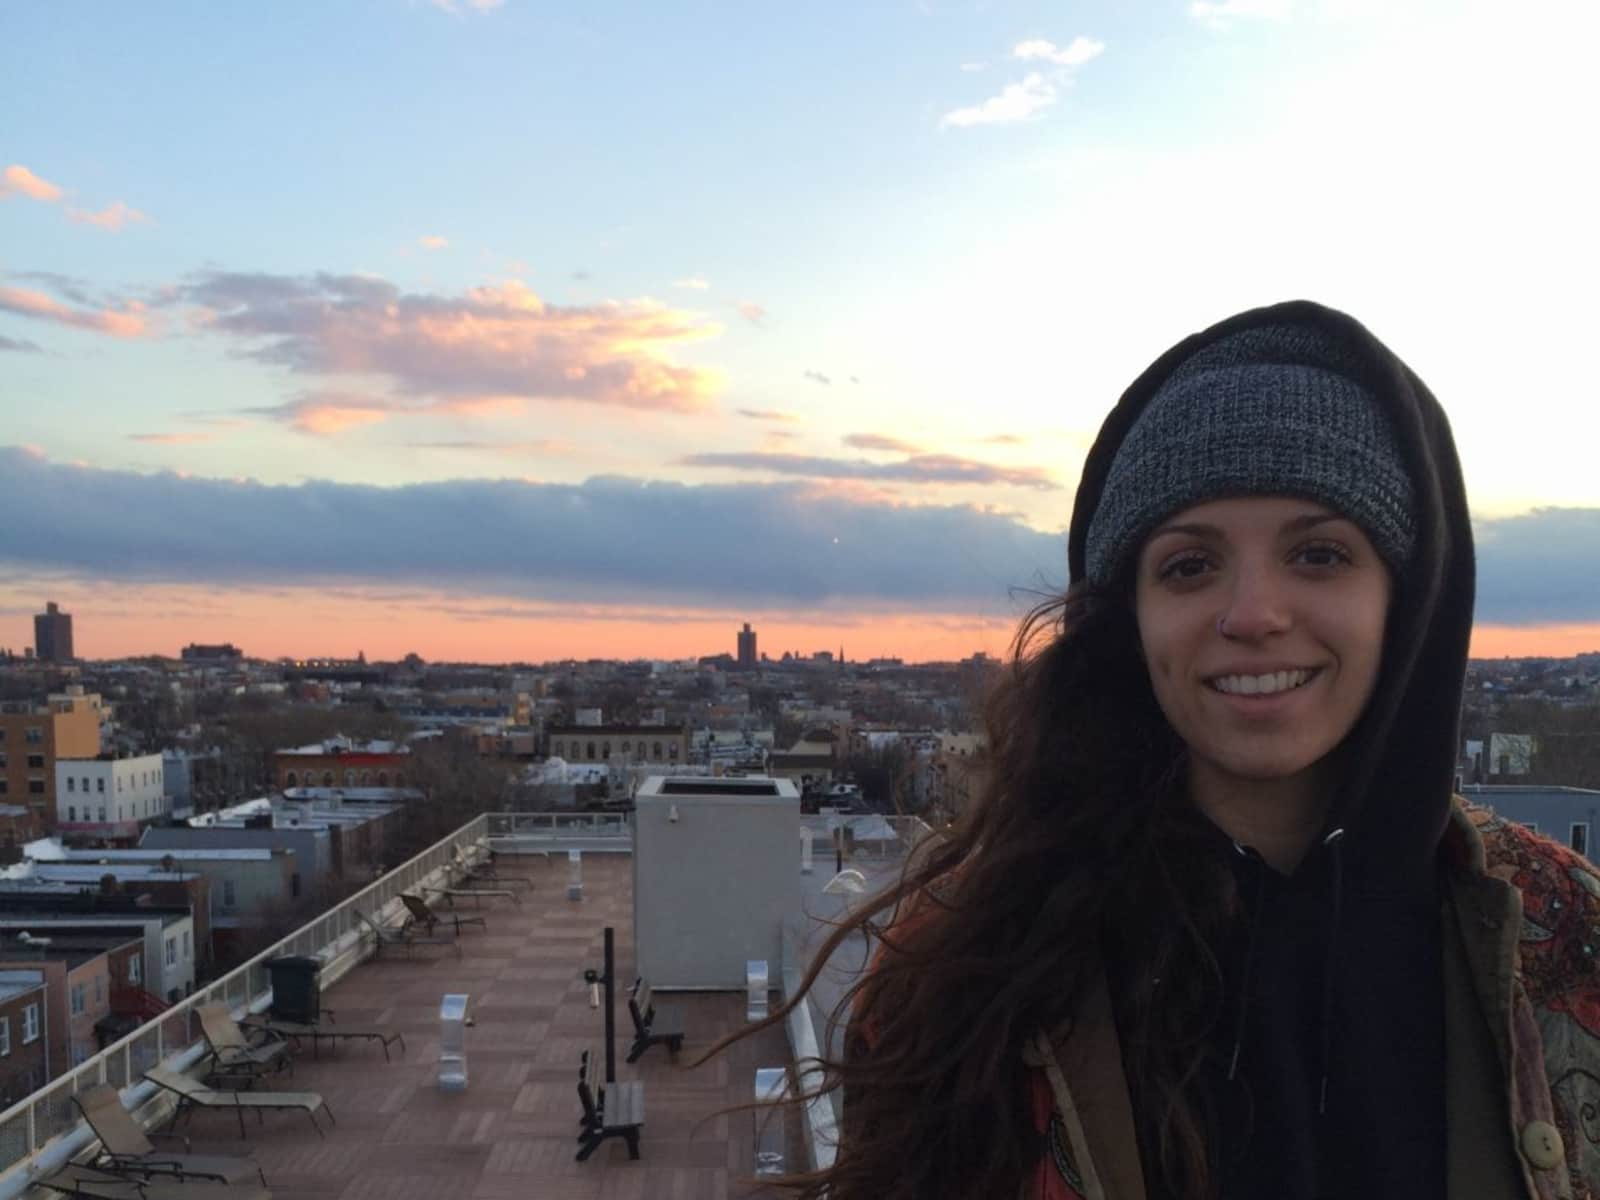 Taylor from Borough of Queens, New York, United States